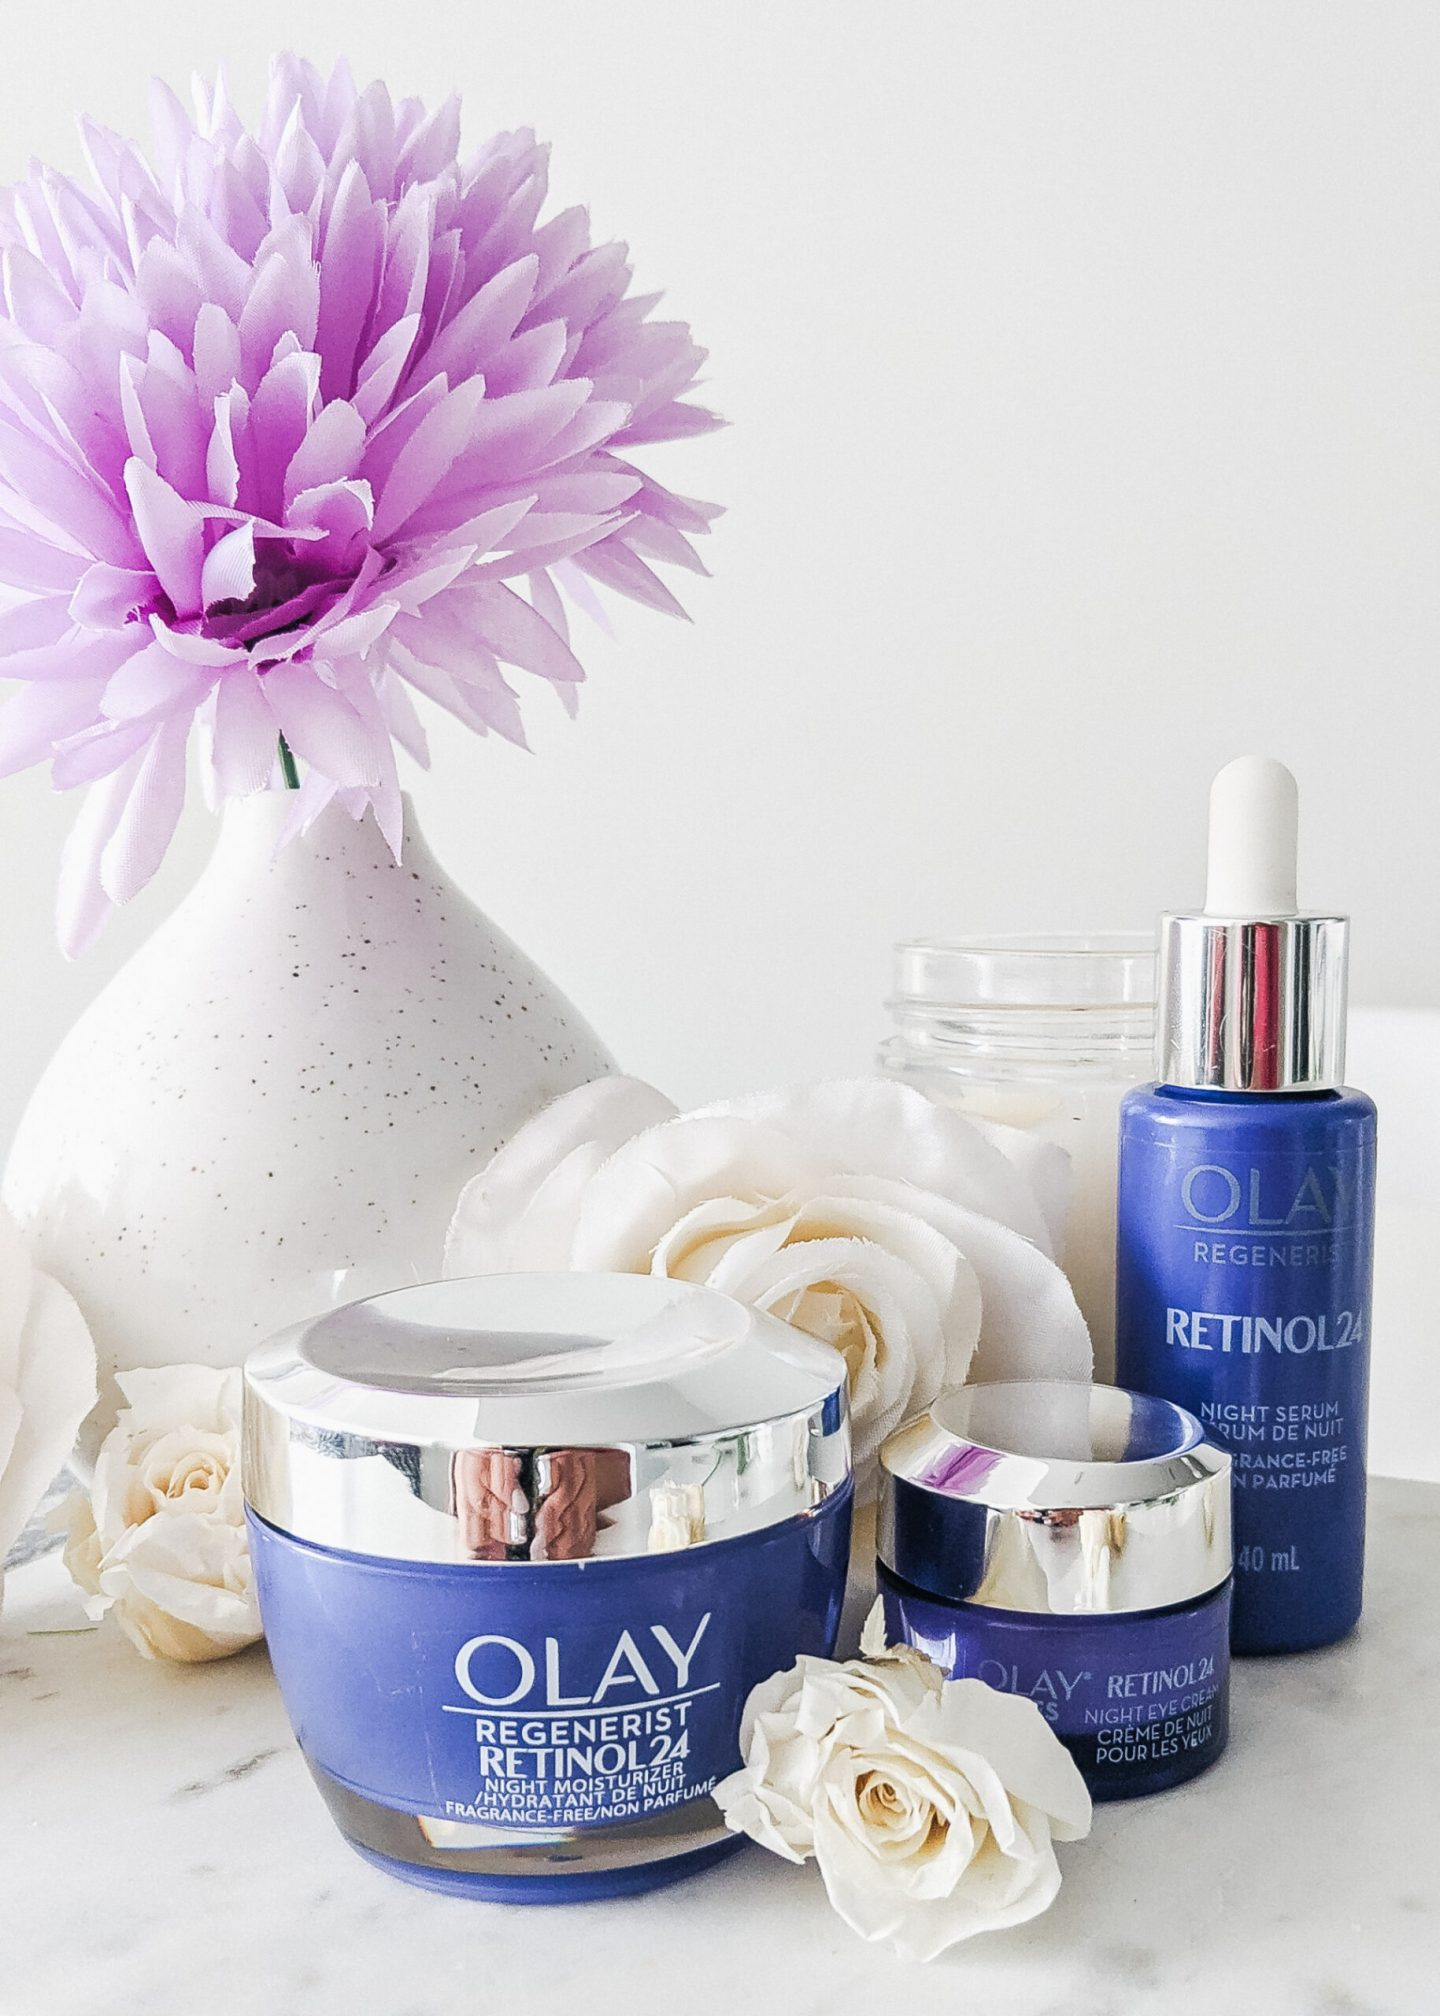 Olay Retinol24 Collection